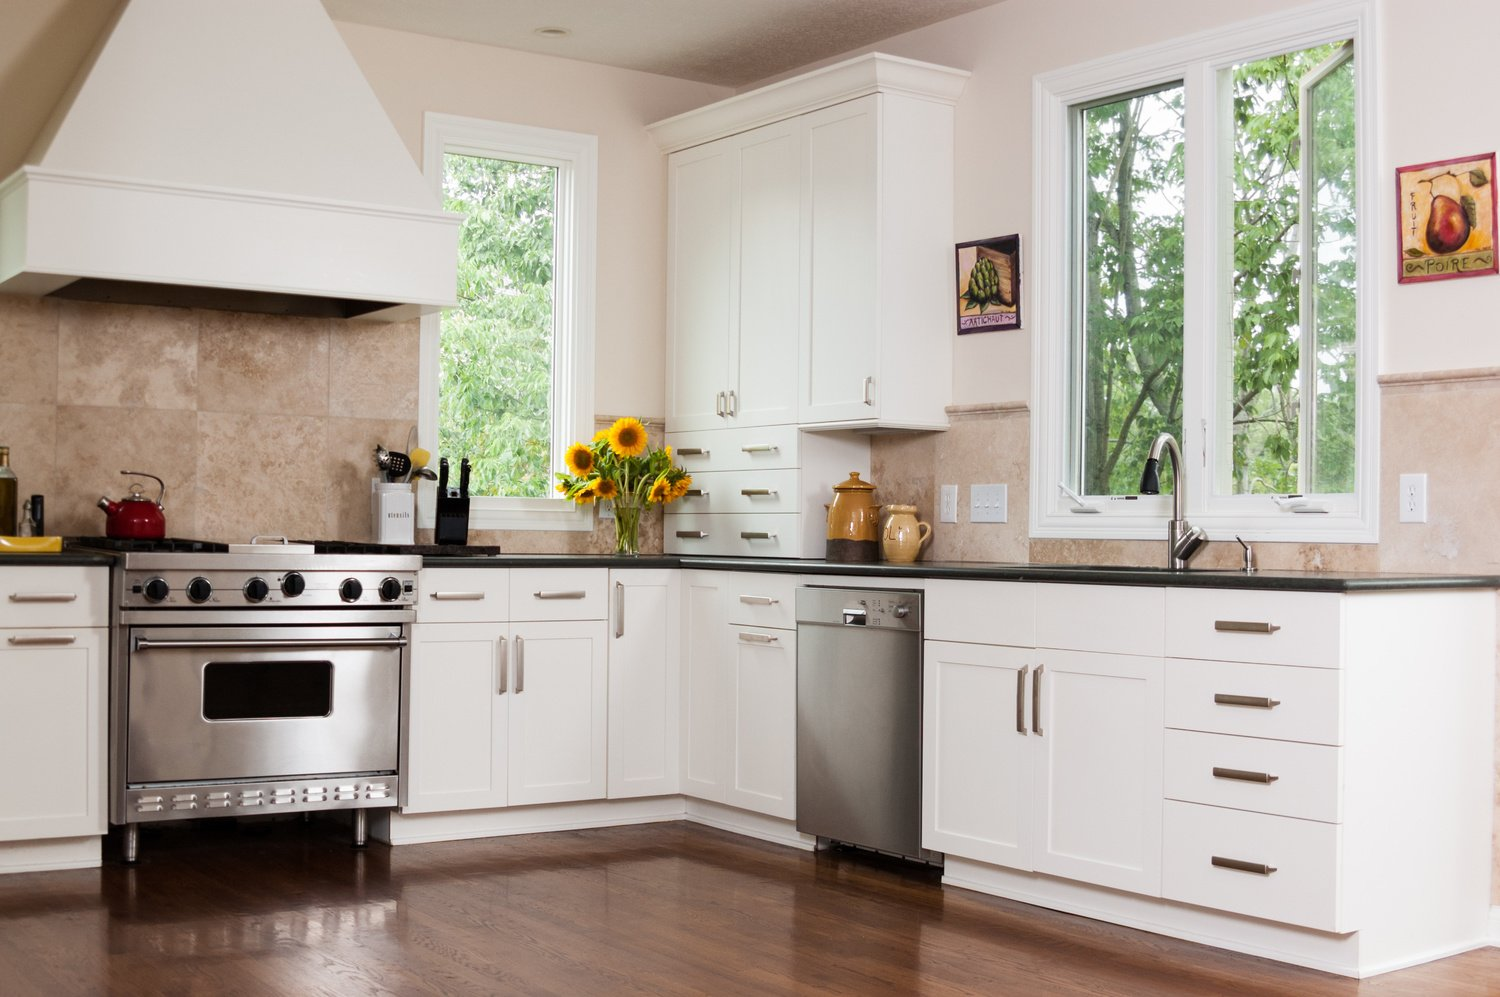 10 Reasons Why Cleaning the Kitchen is Necessary for Better Health ...